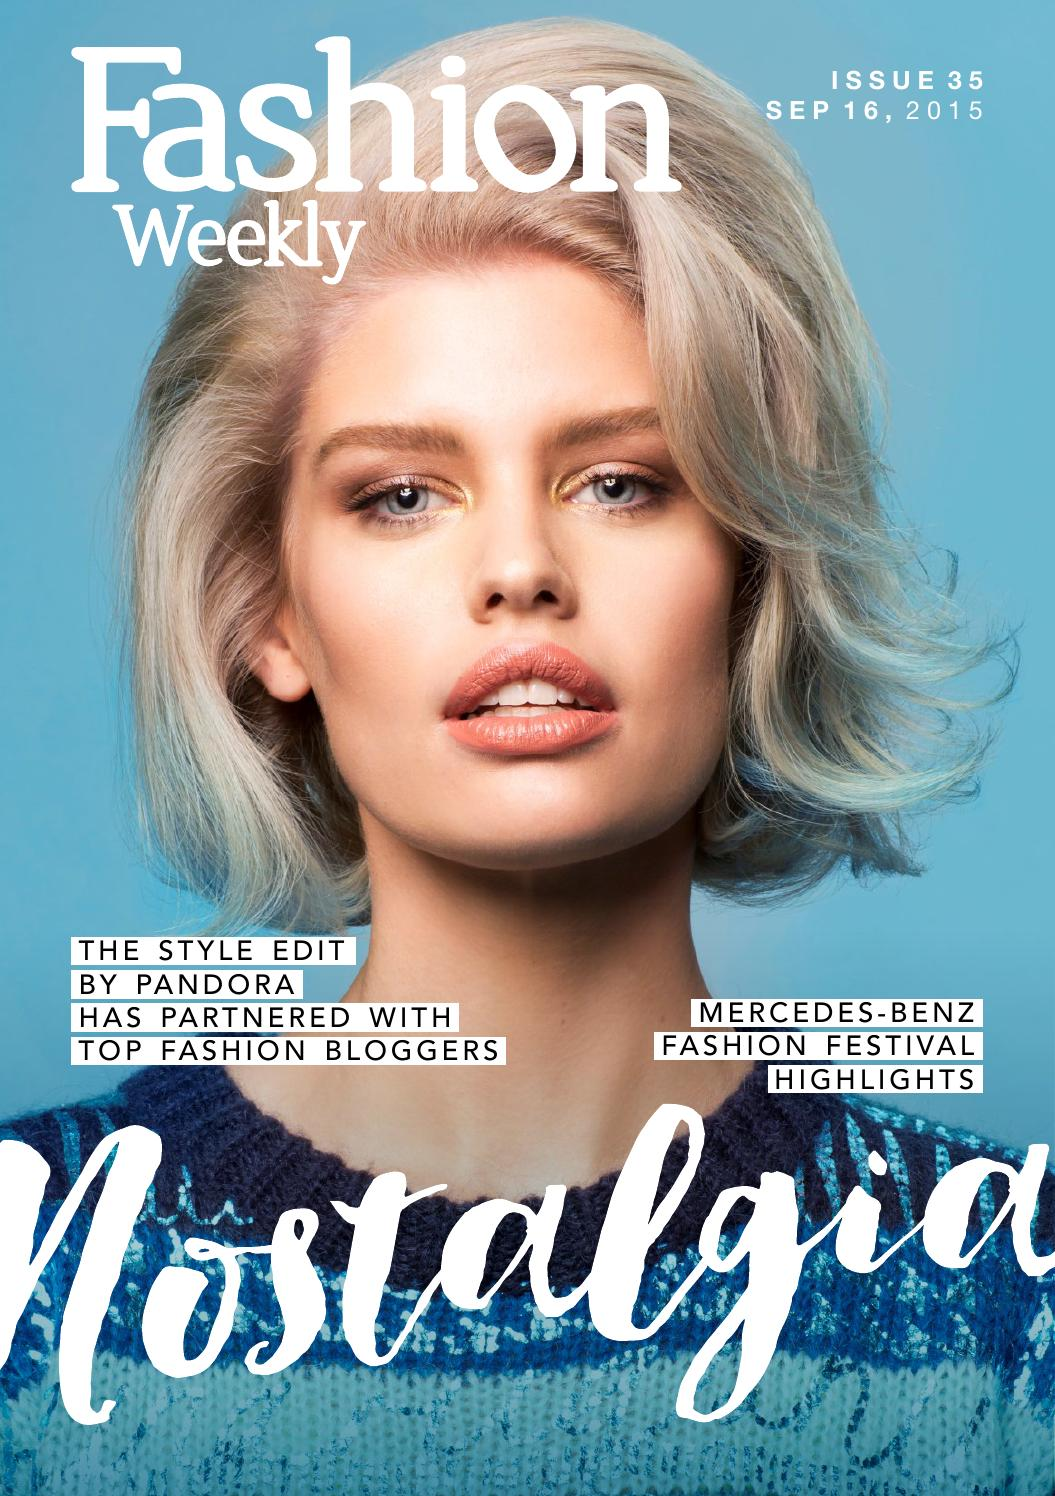 Fashion Weekly Magazine Issue 35 Nostalgia Sept 16 2015 By Fashion Weekly Issuu